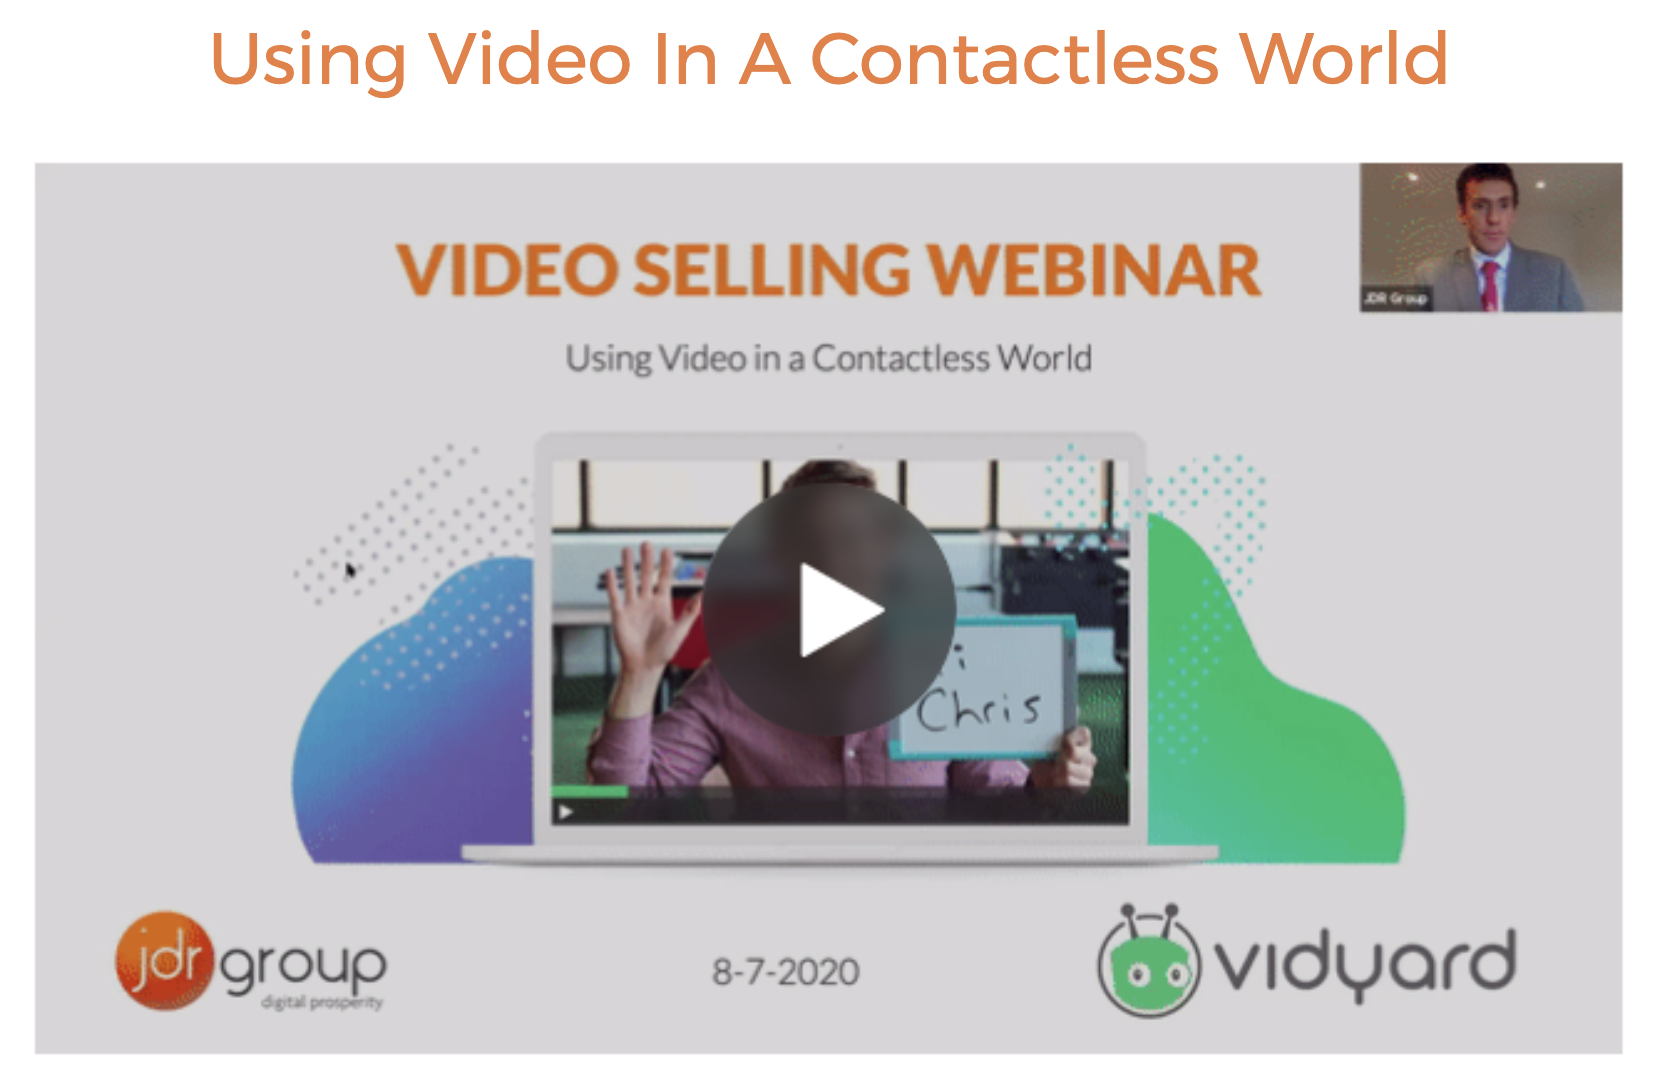 USING VIDEO IN A CONTACTLESS WORLD